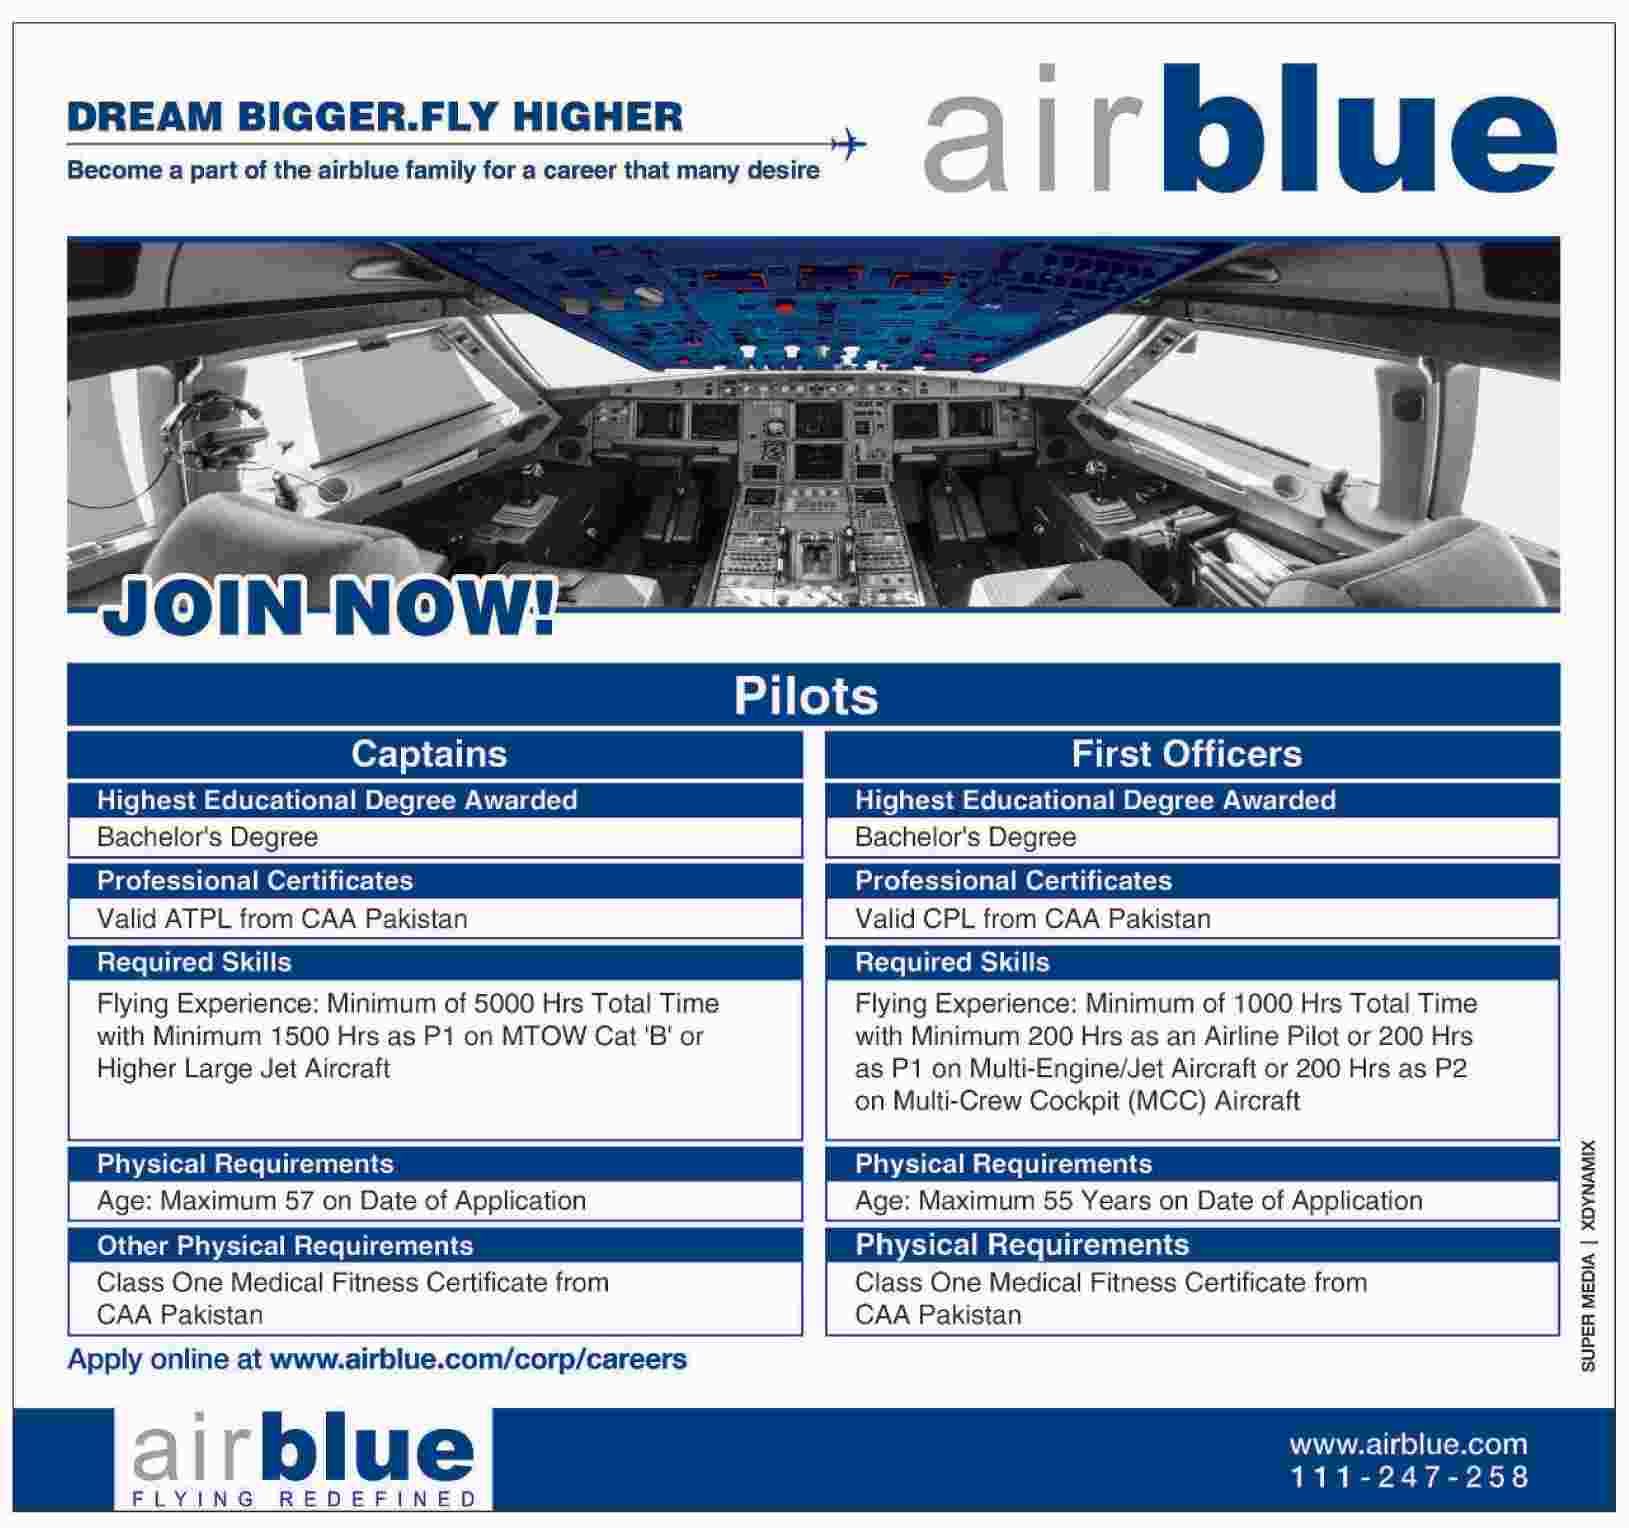 Air Blue Pilots Captain, First Officer Jobs 2015 Apply Online Eligibility